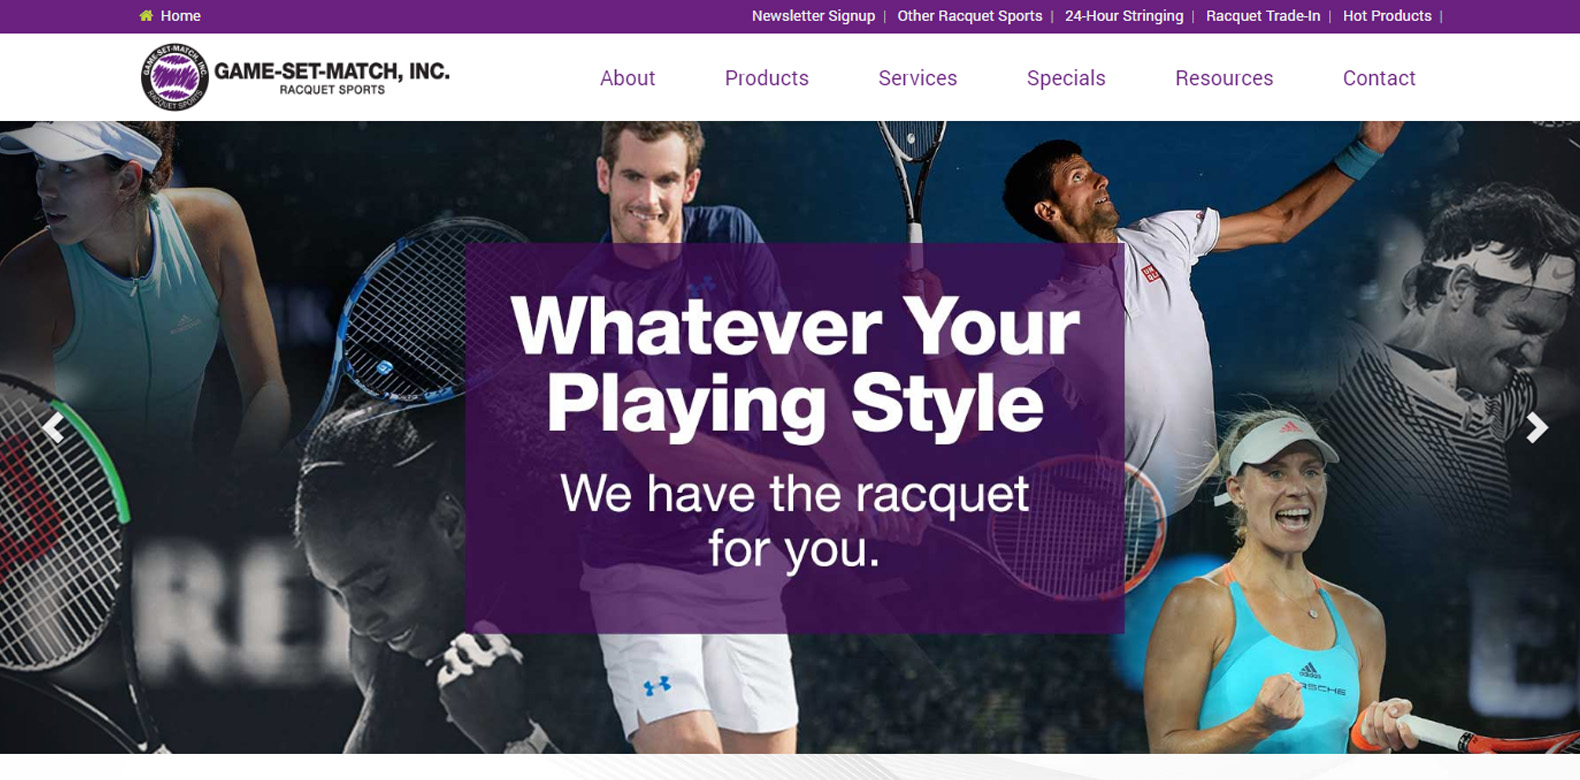 Website Redesign: Game, Set, Match Inc.